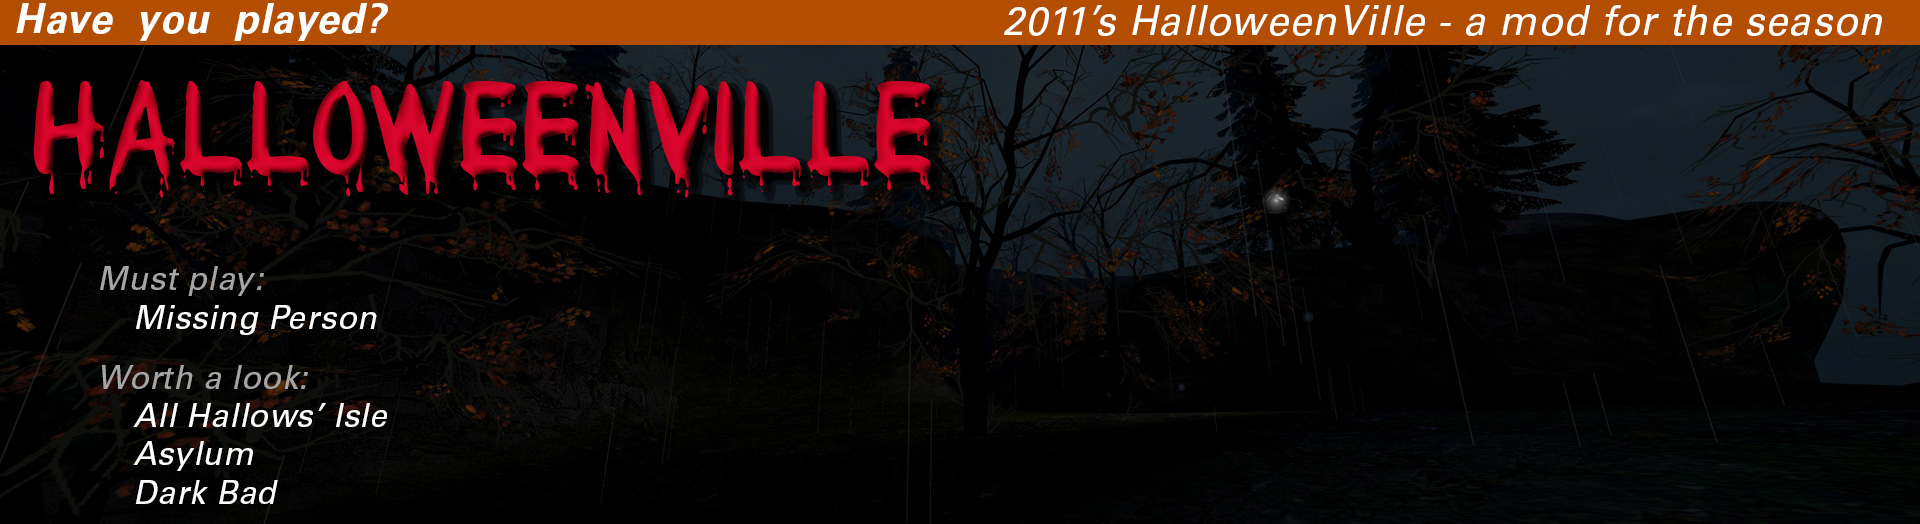 Have you played HalloweenVille?